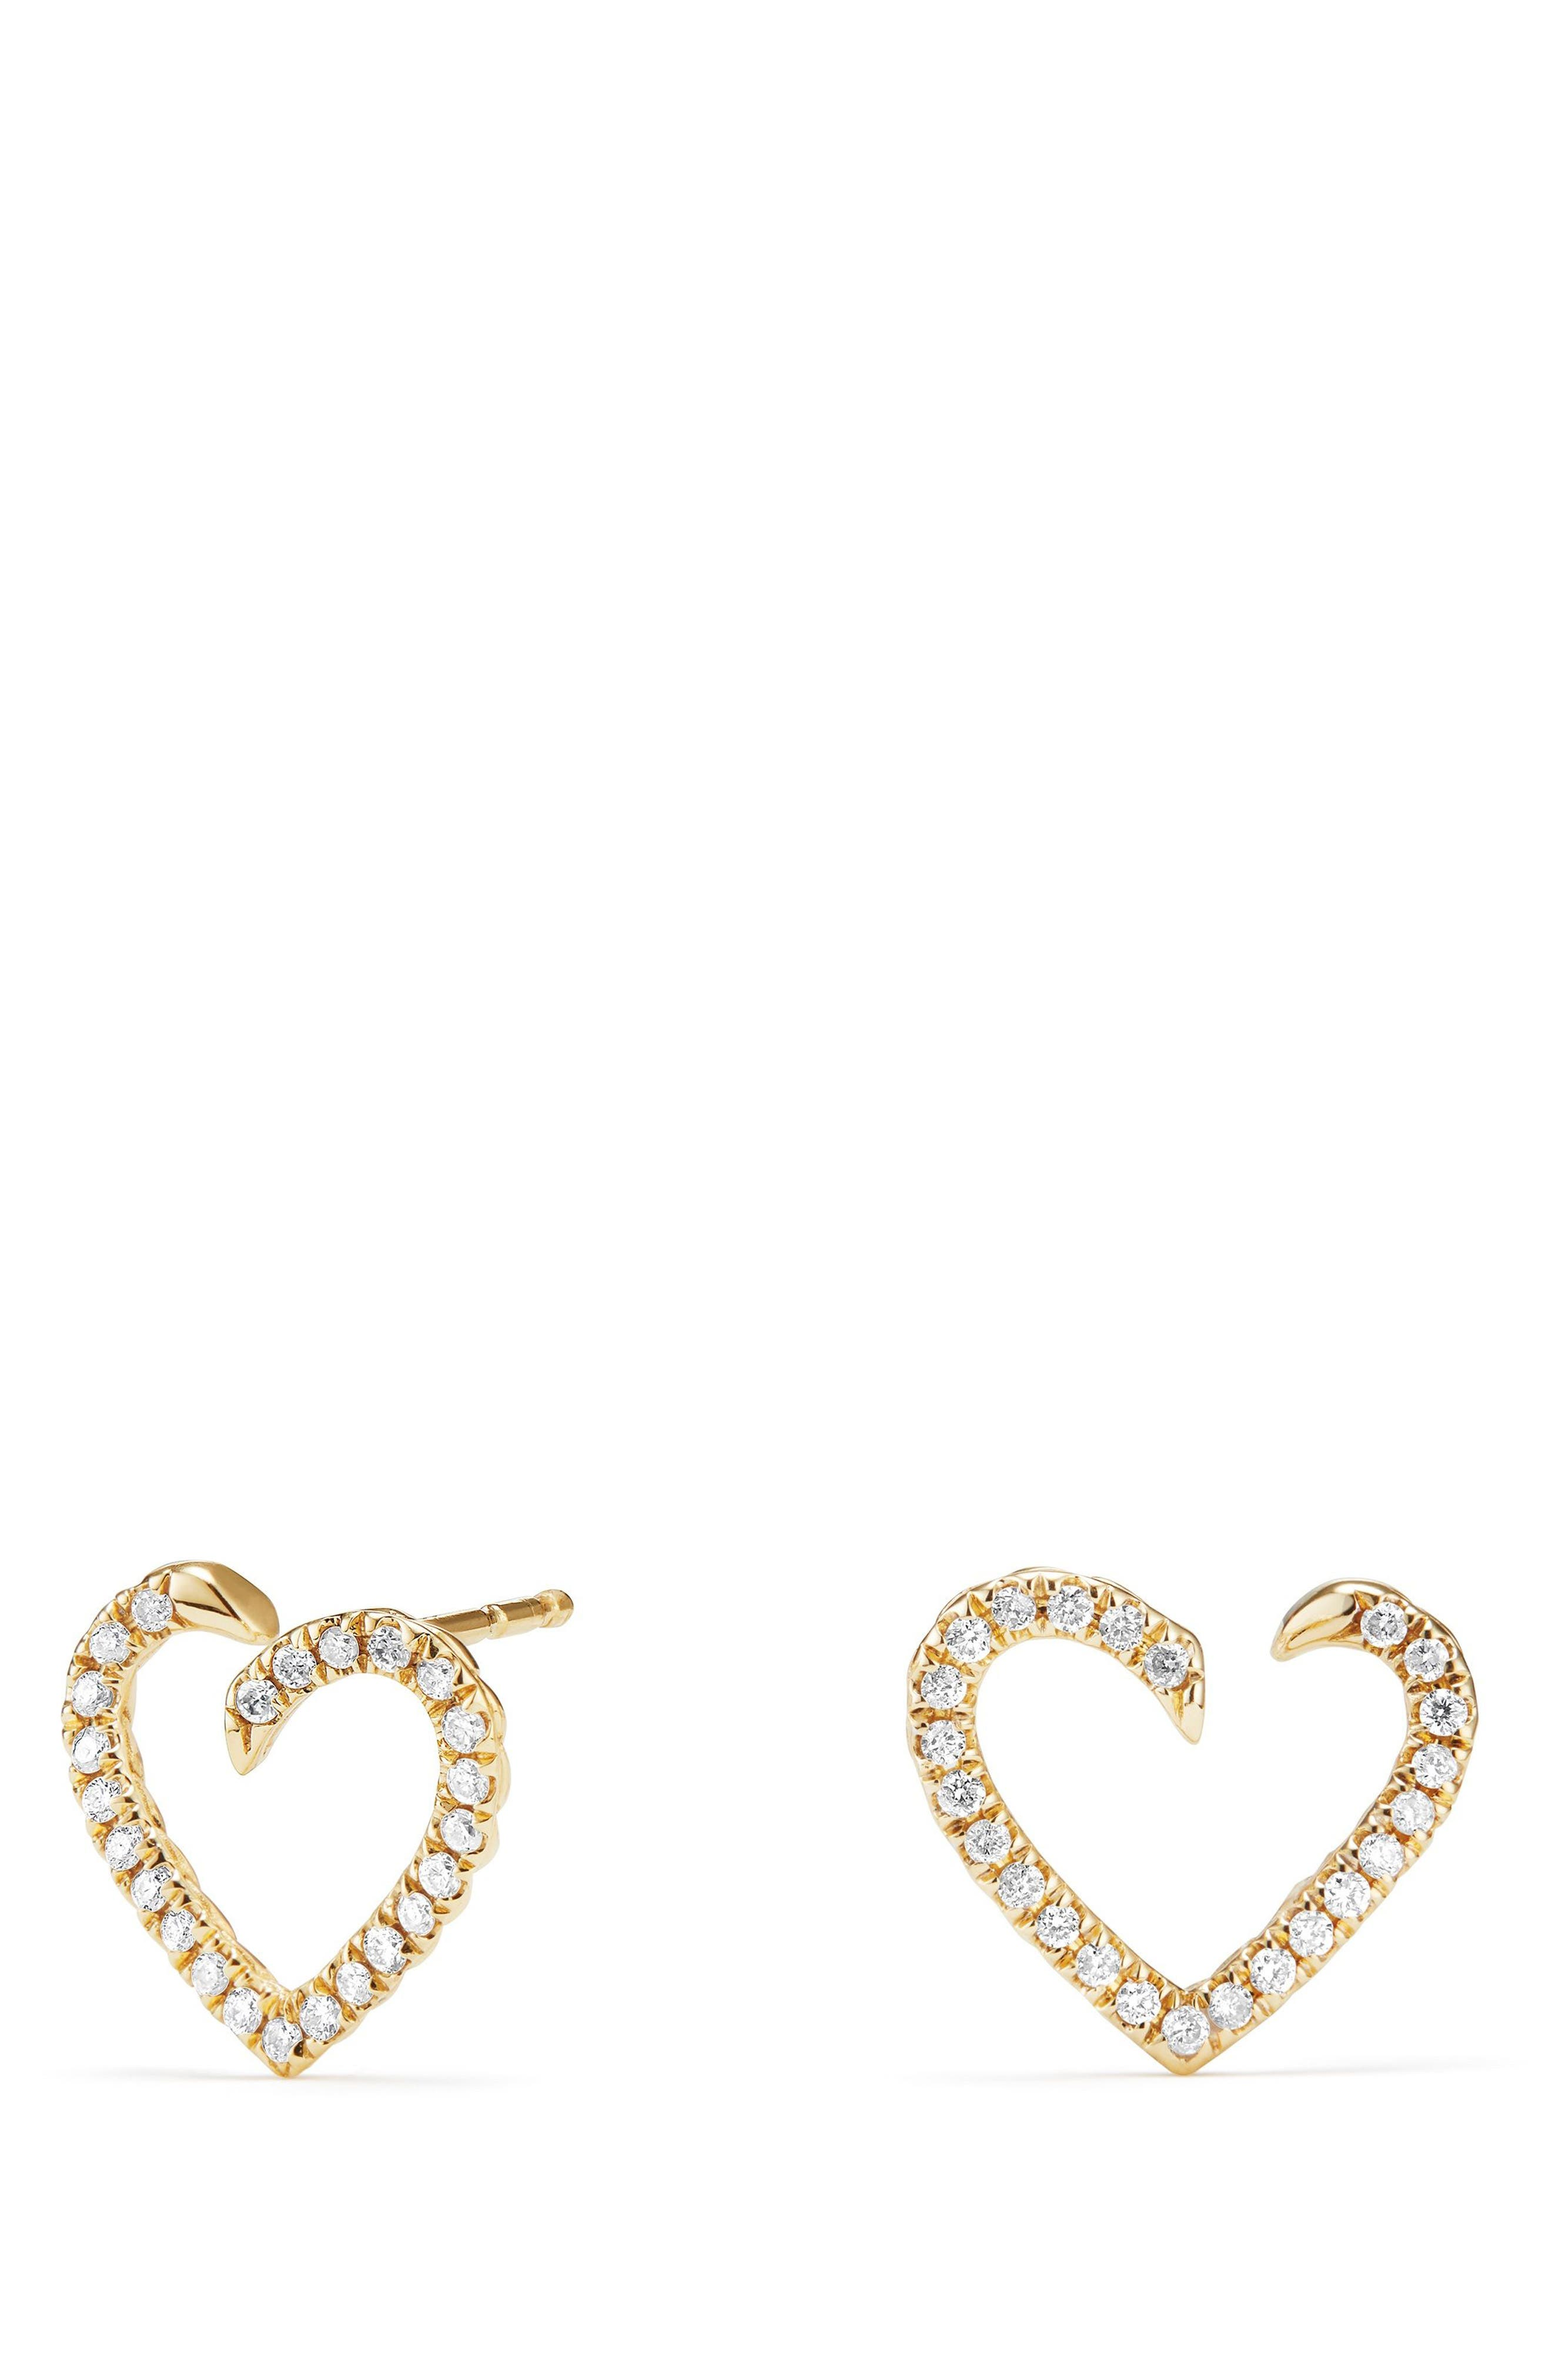 Heart Wrap Earrings with Diamonds in 18K Gold,                             Main thumbnail 1, color,                             Gold/ Diamond